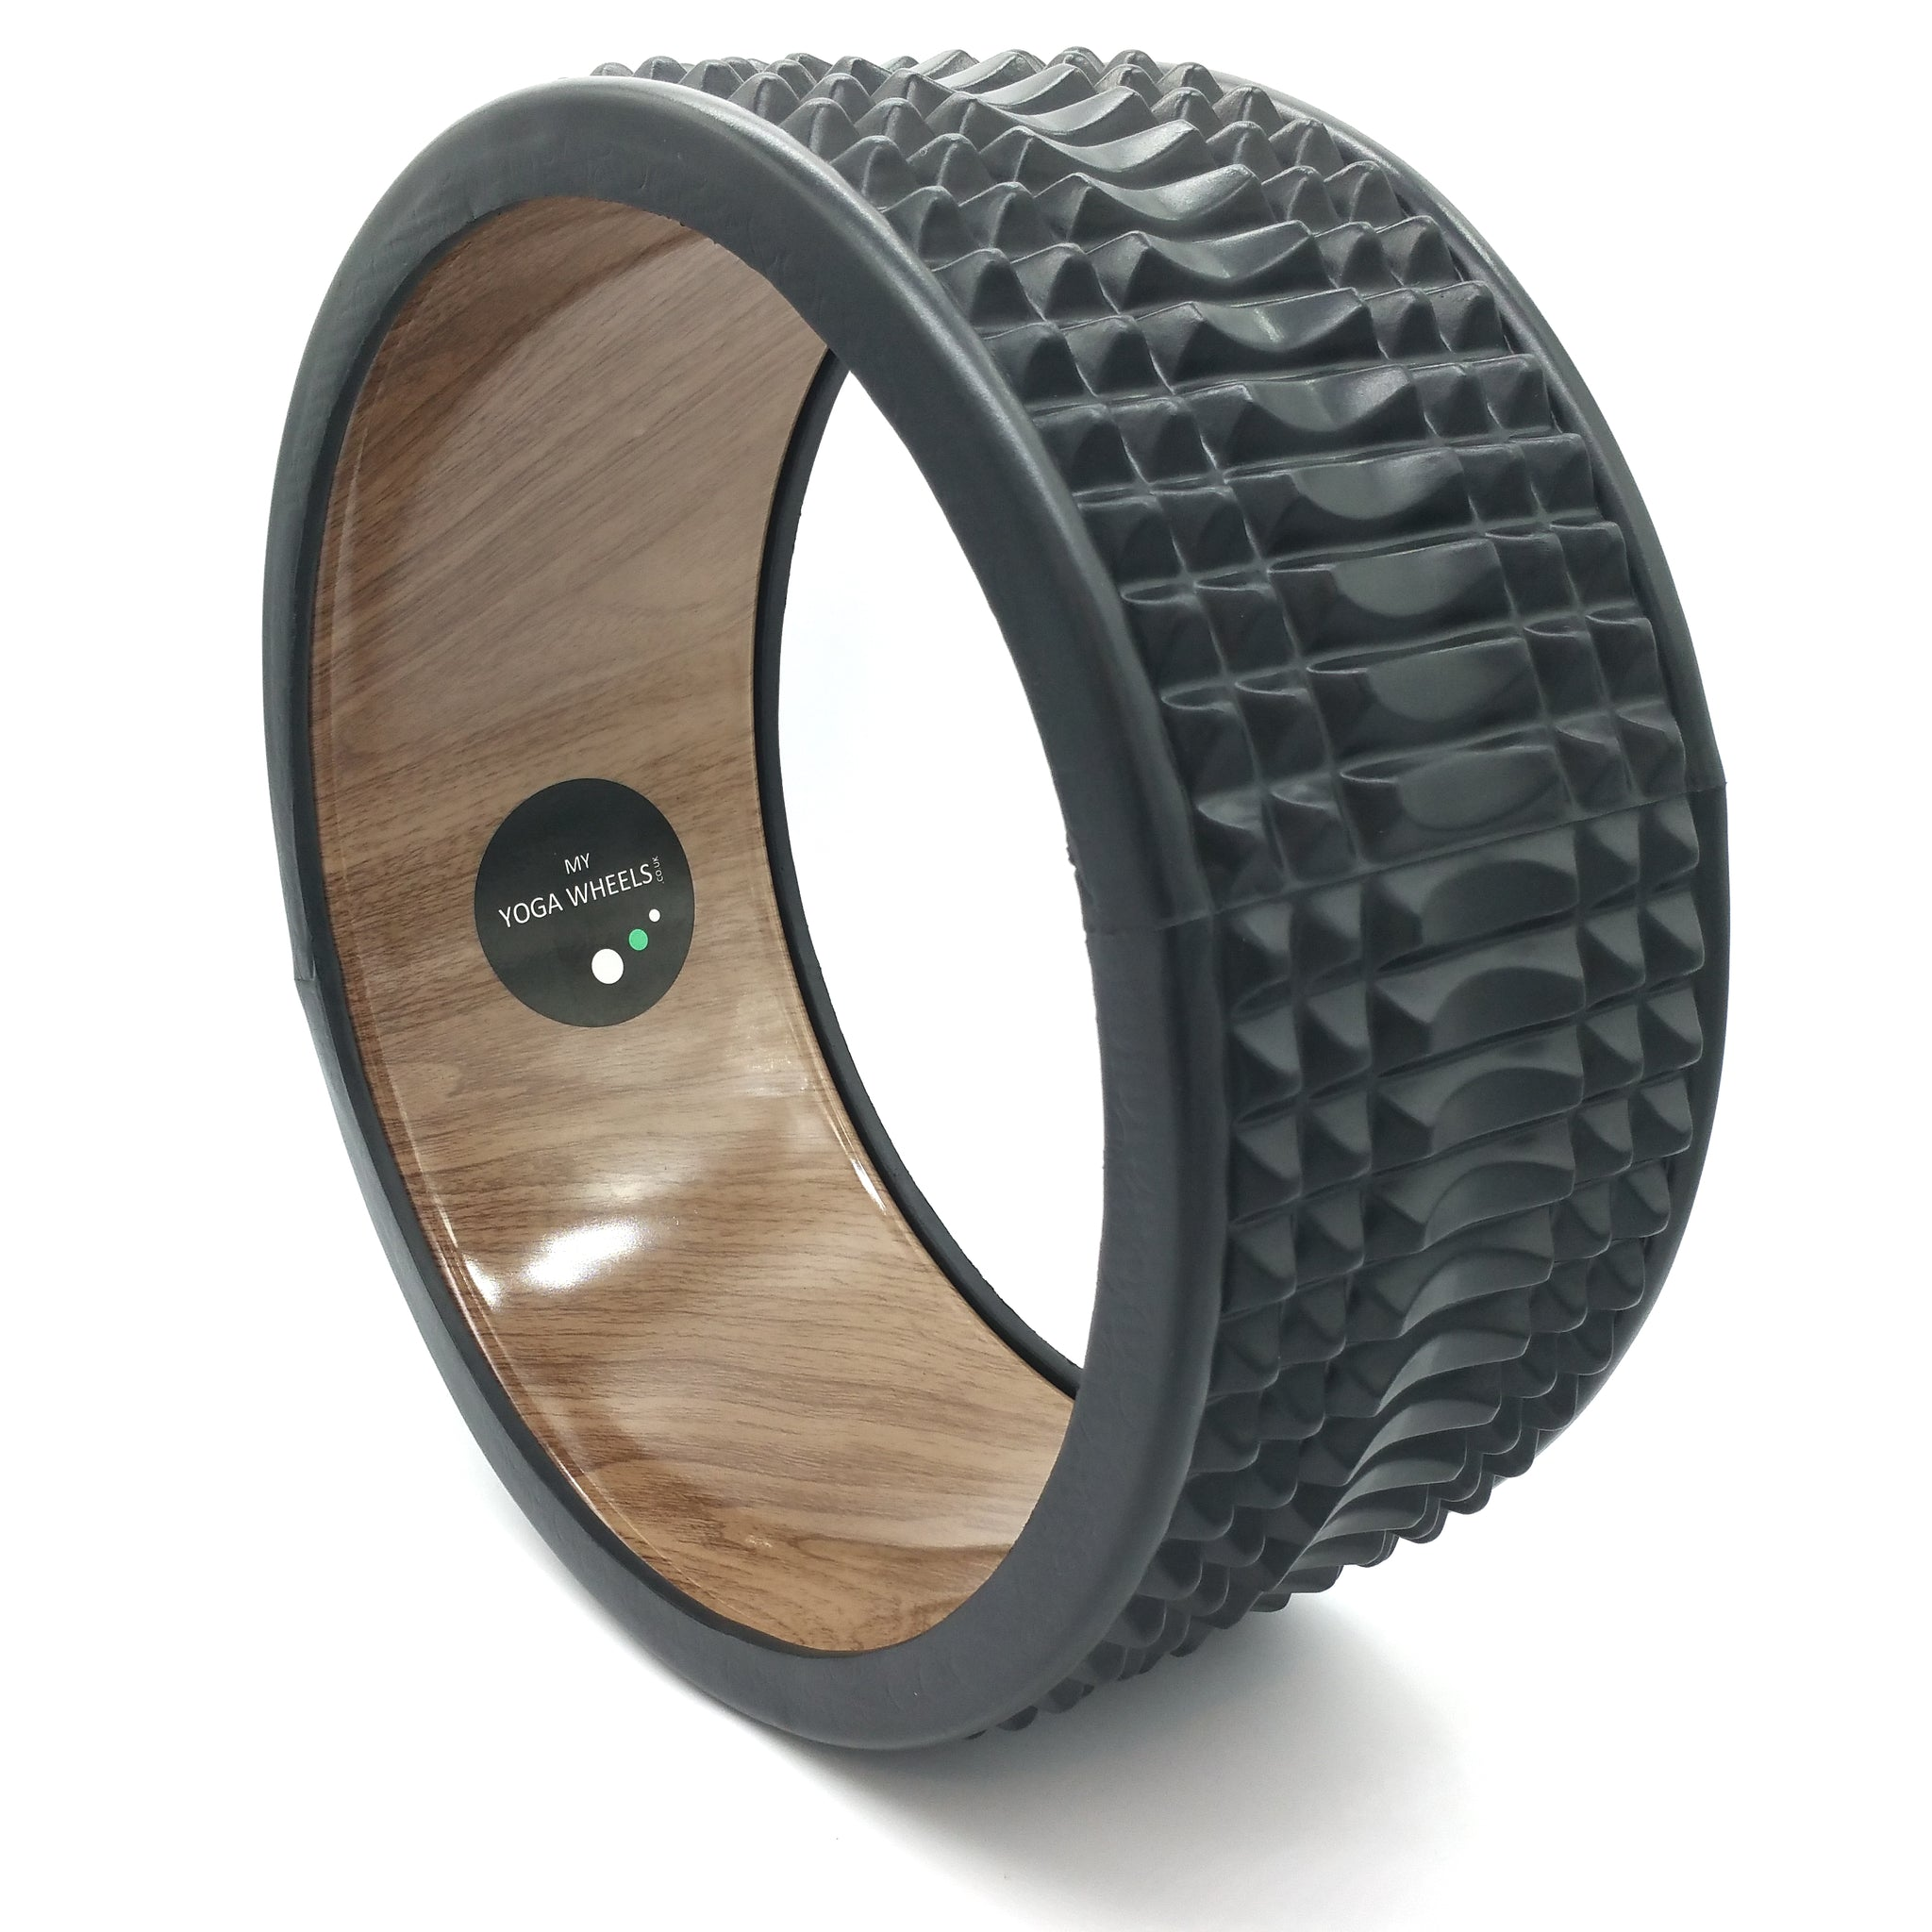 Trigger Point Yoga Wheel - Wood + Black - MyYogaWheels - buy yoga wheel and accessories online